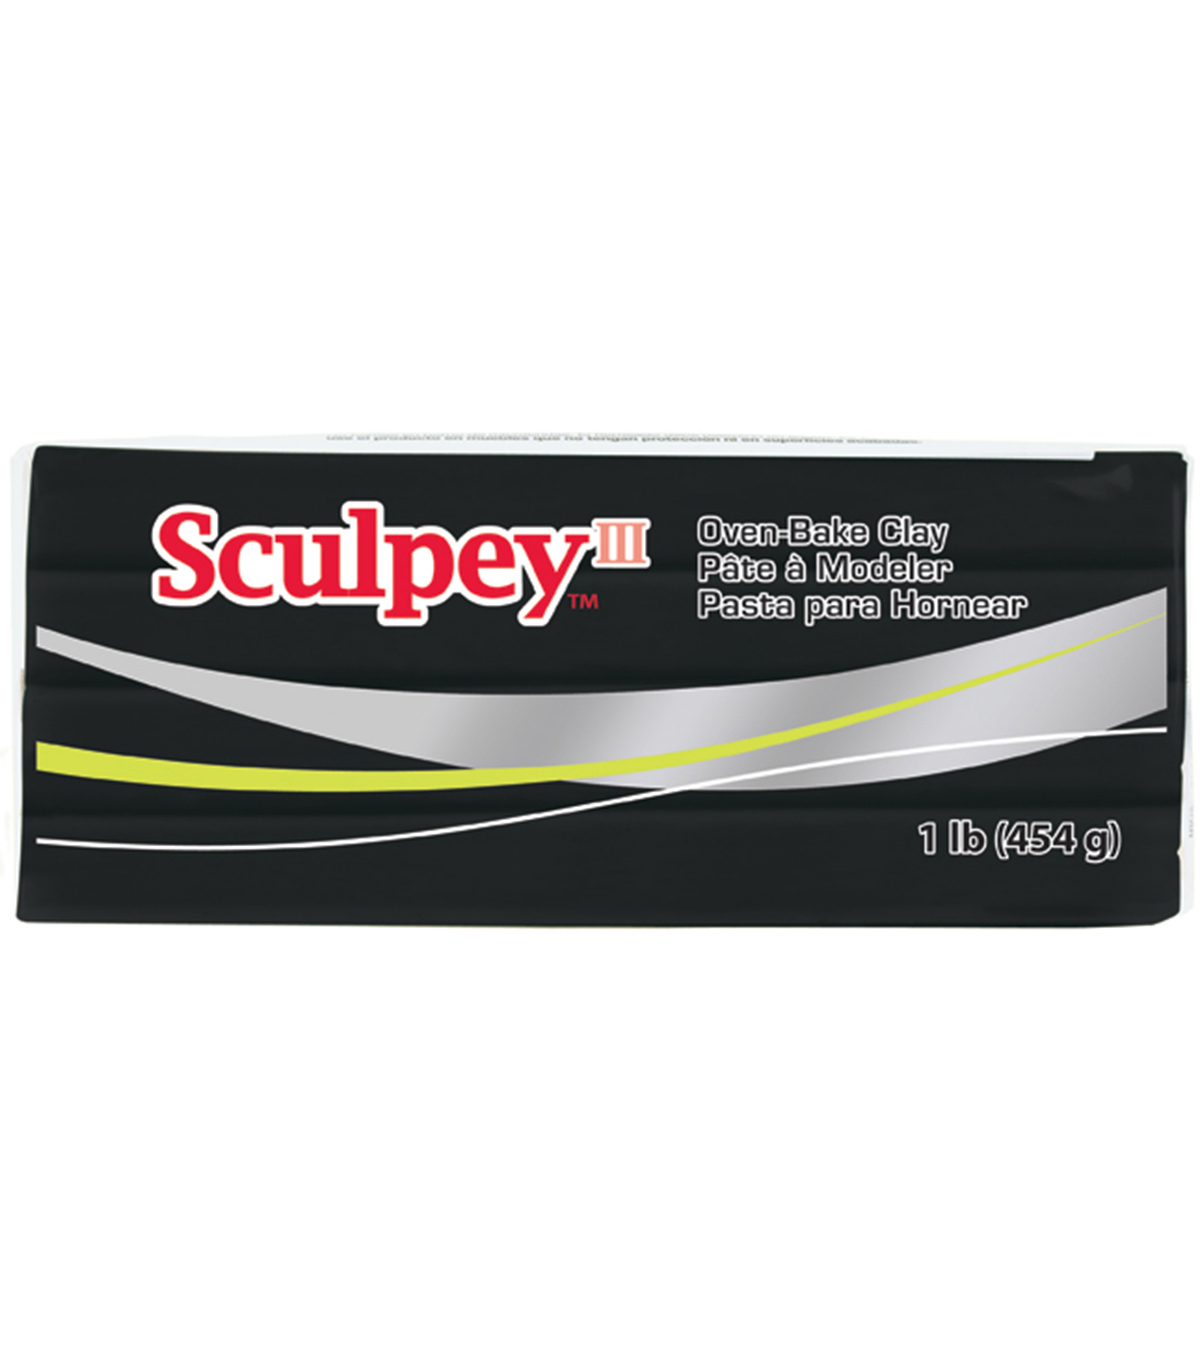 Sculpey III One Pound Packages, Black